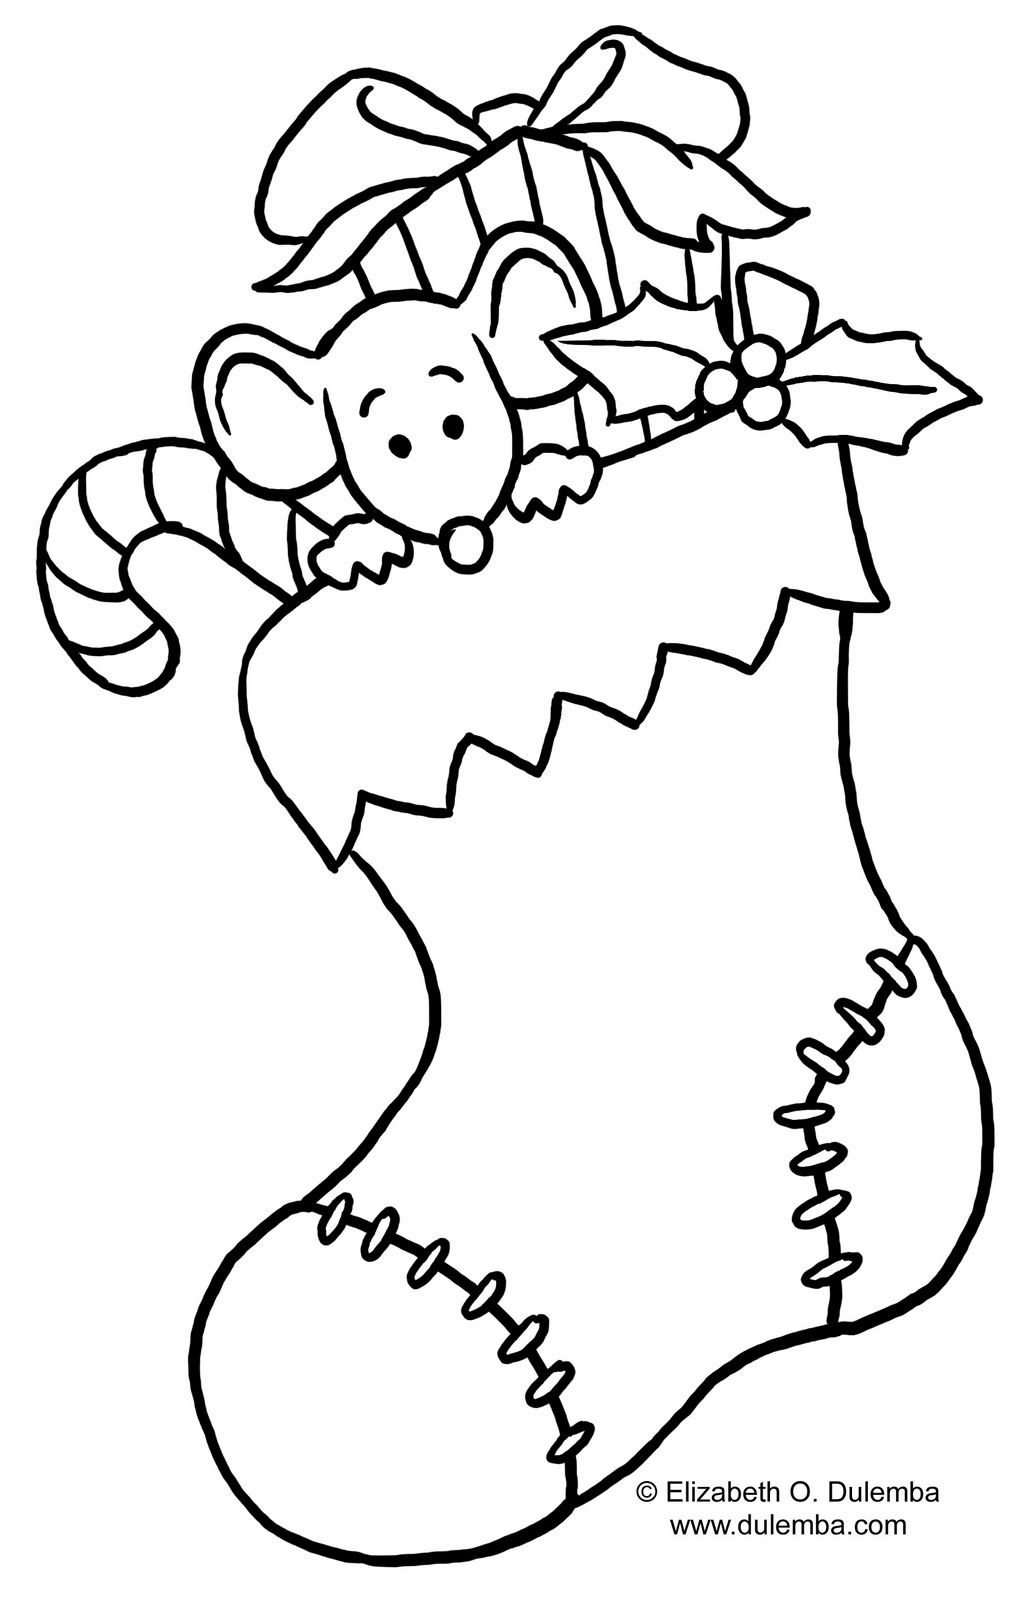 Christmas Stocking Coloring Page gtgt Disney Pages